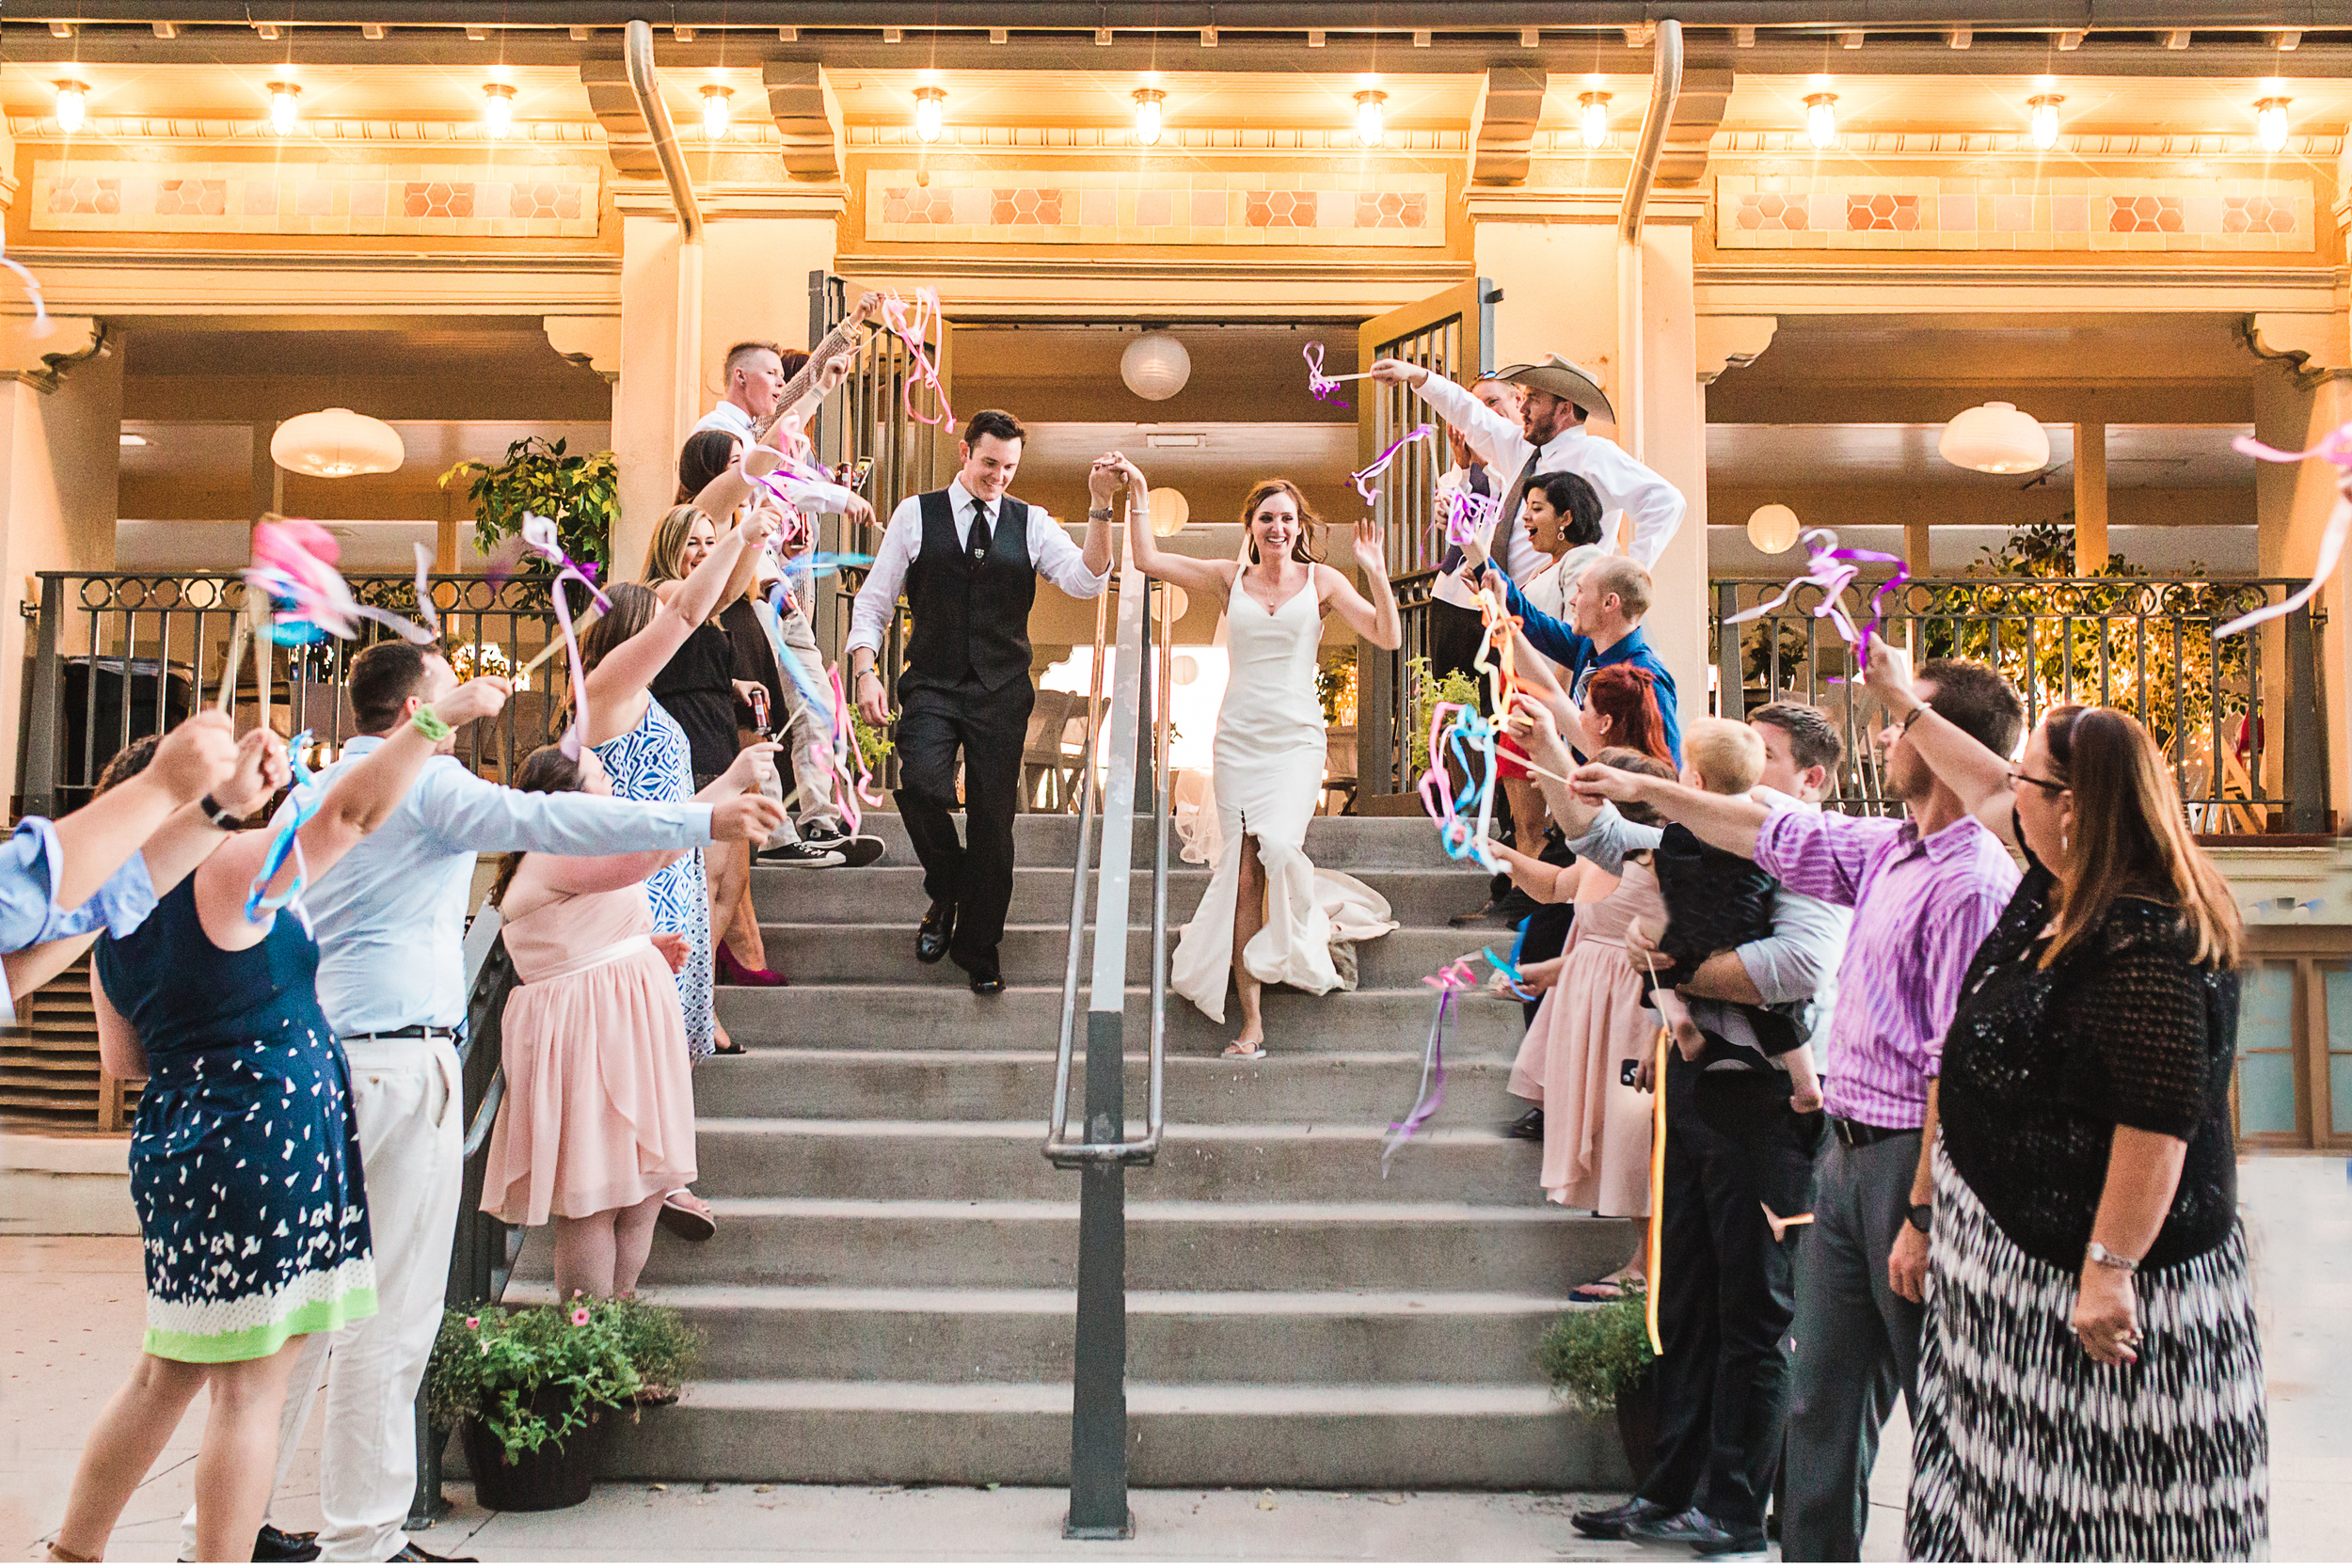 Washington Park Denver Boathouse Wedding Reception by Lily Jean Photography